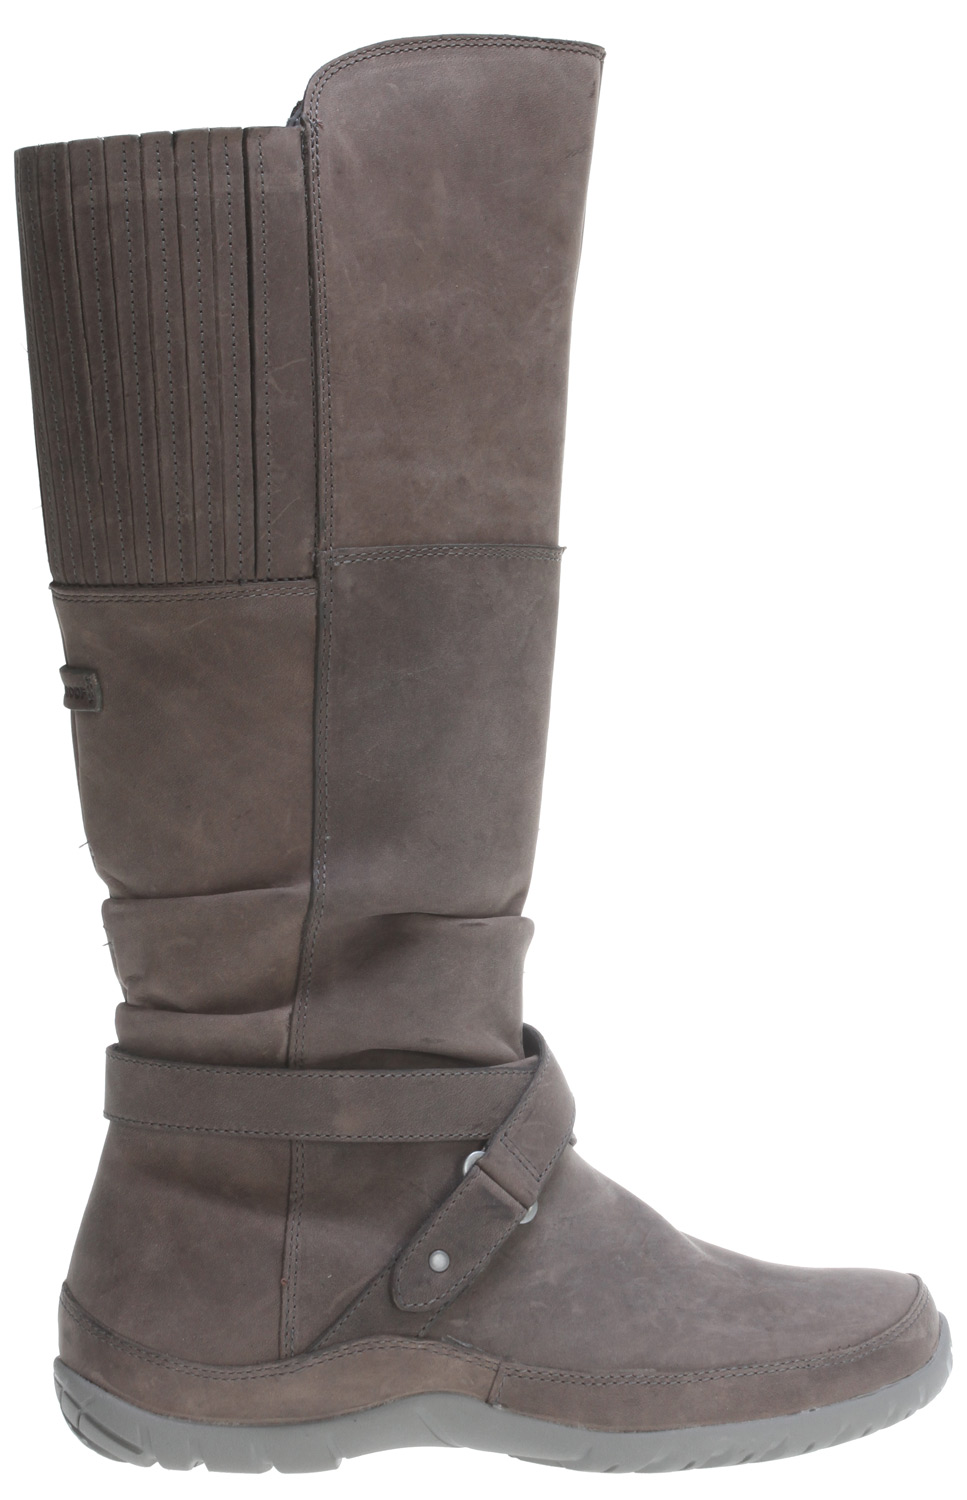 Boots Womens Sale YsoVurJ7